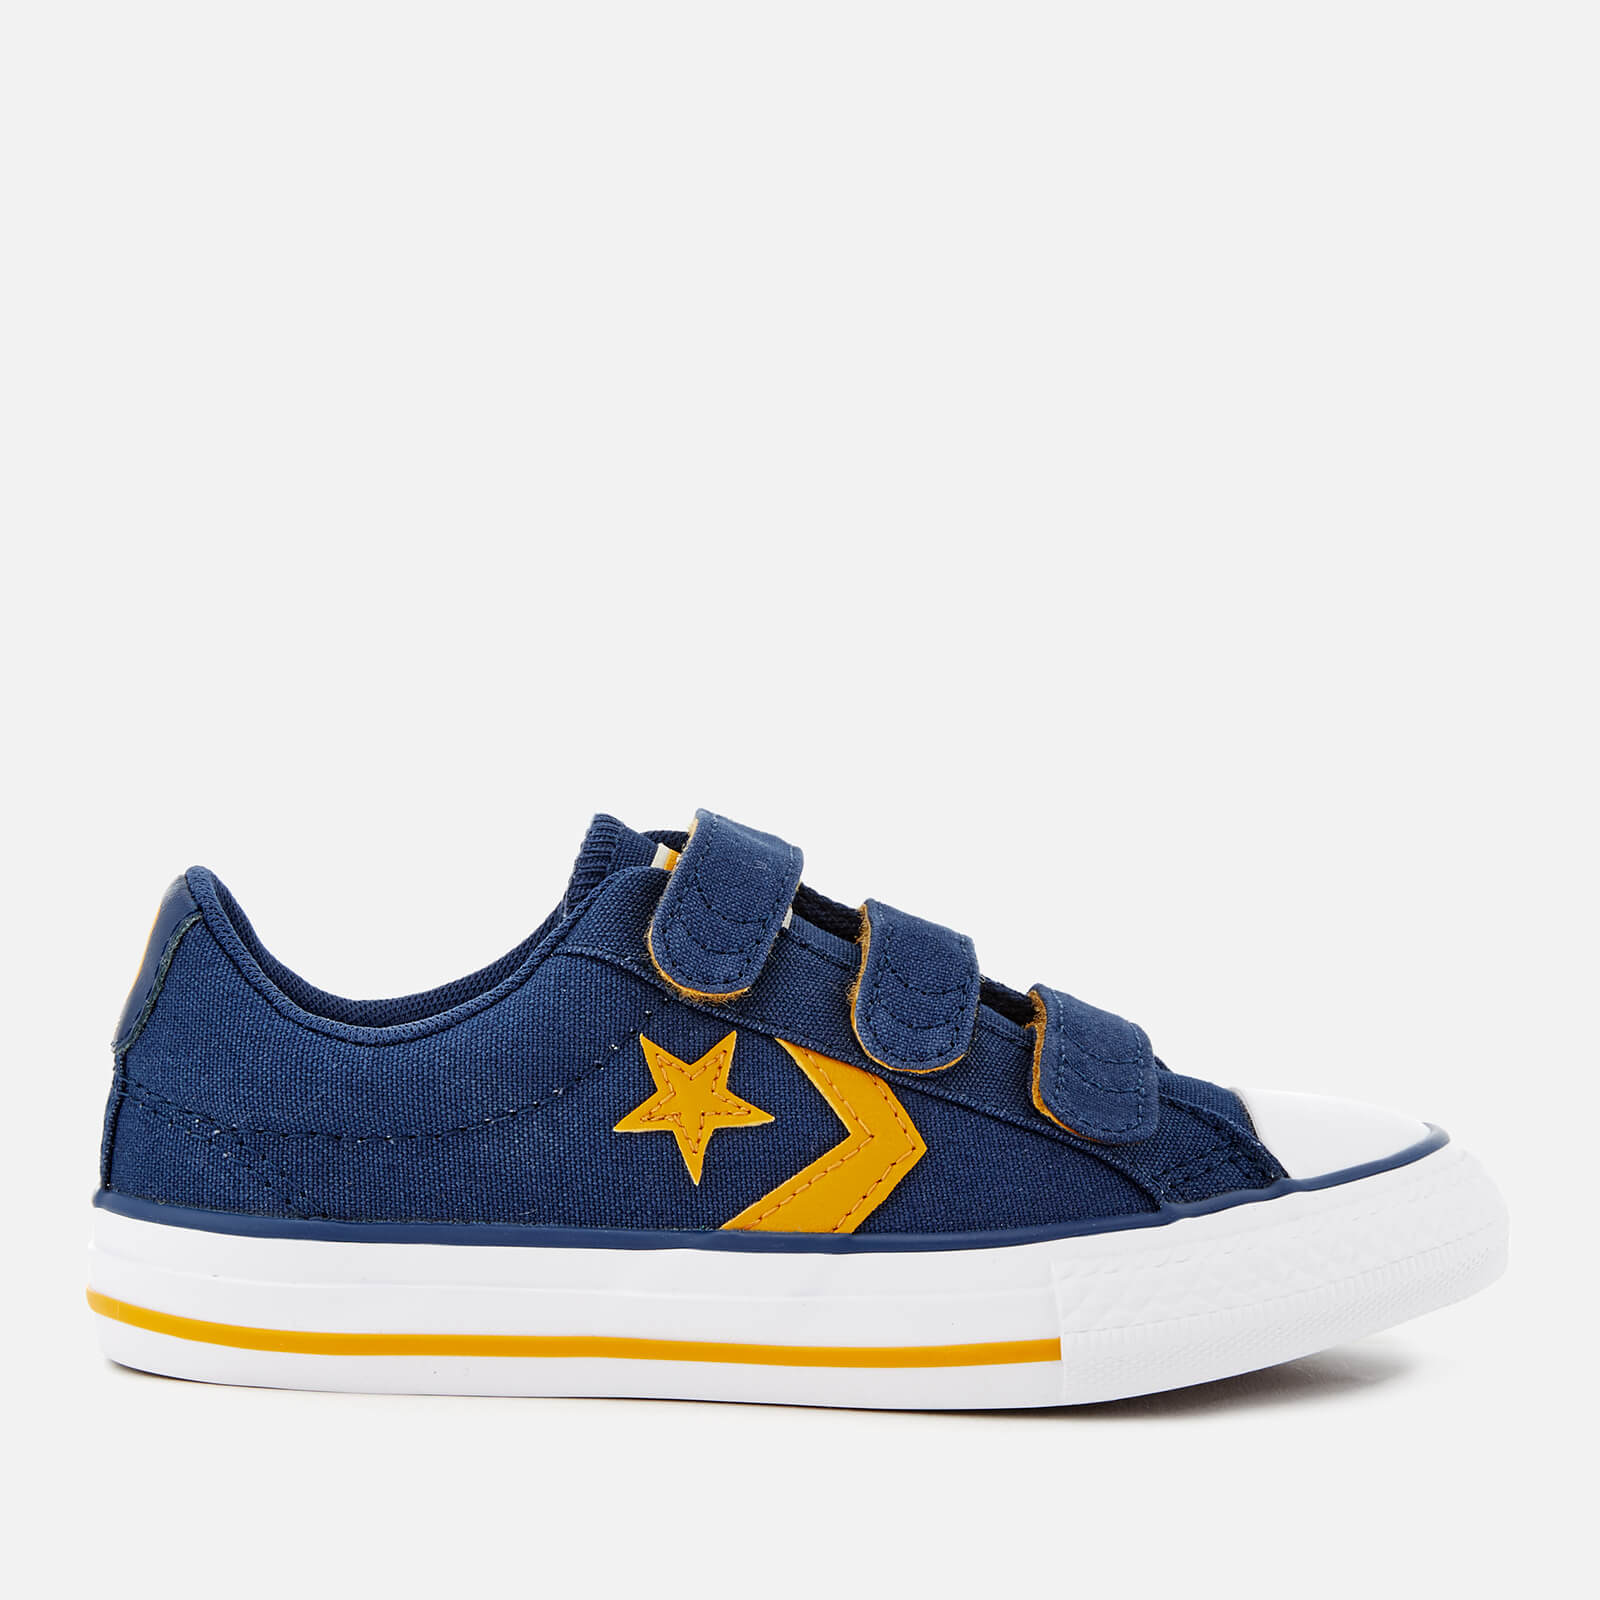 a5468d3625f630 Converse Kids  Star Player Ev 3V Ox Trainers - Navy Mineral Yellow White  Junior Clothing